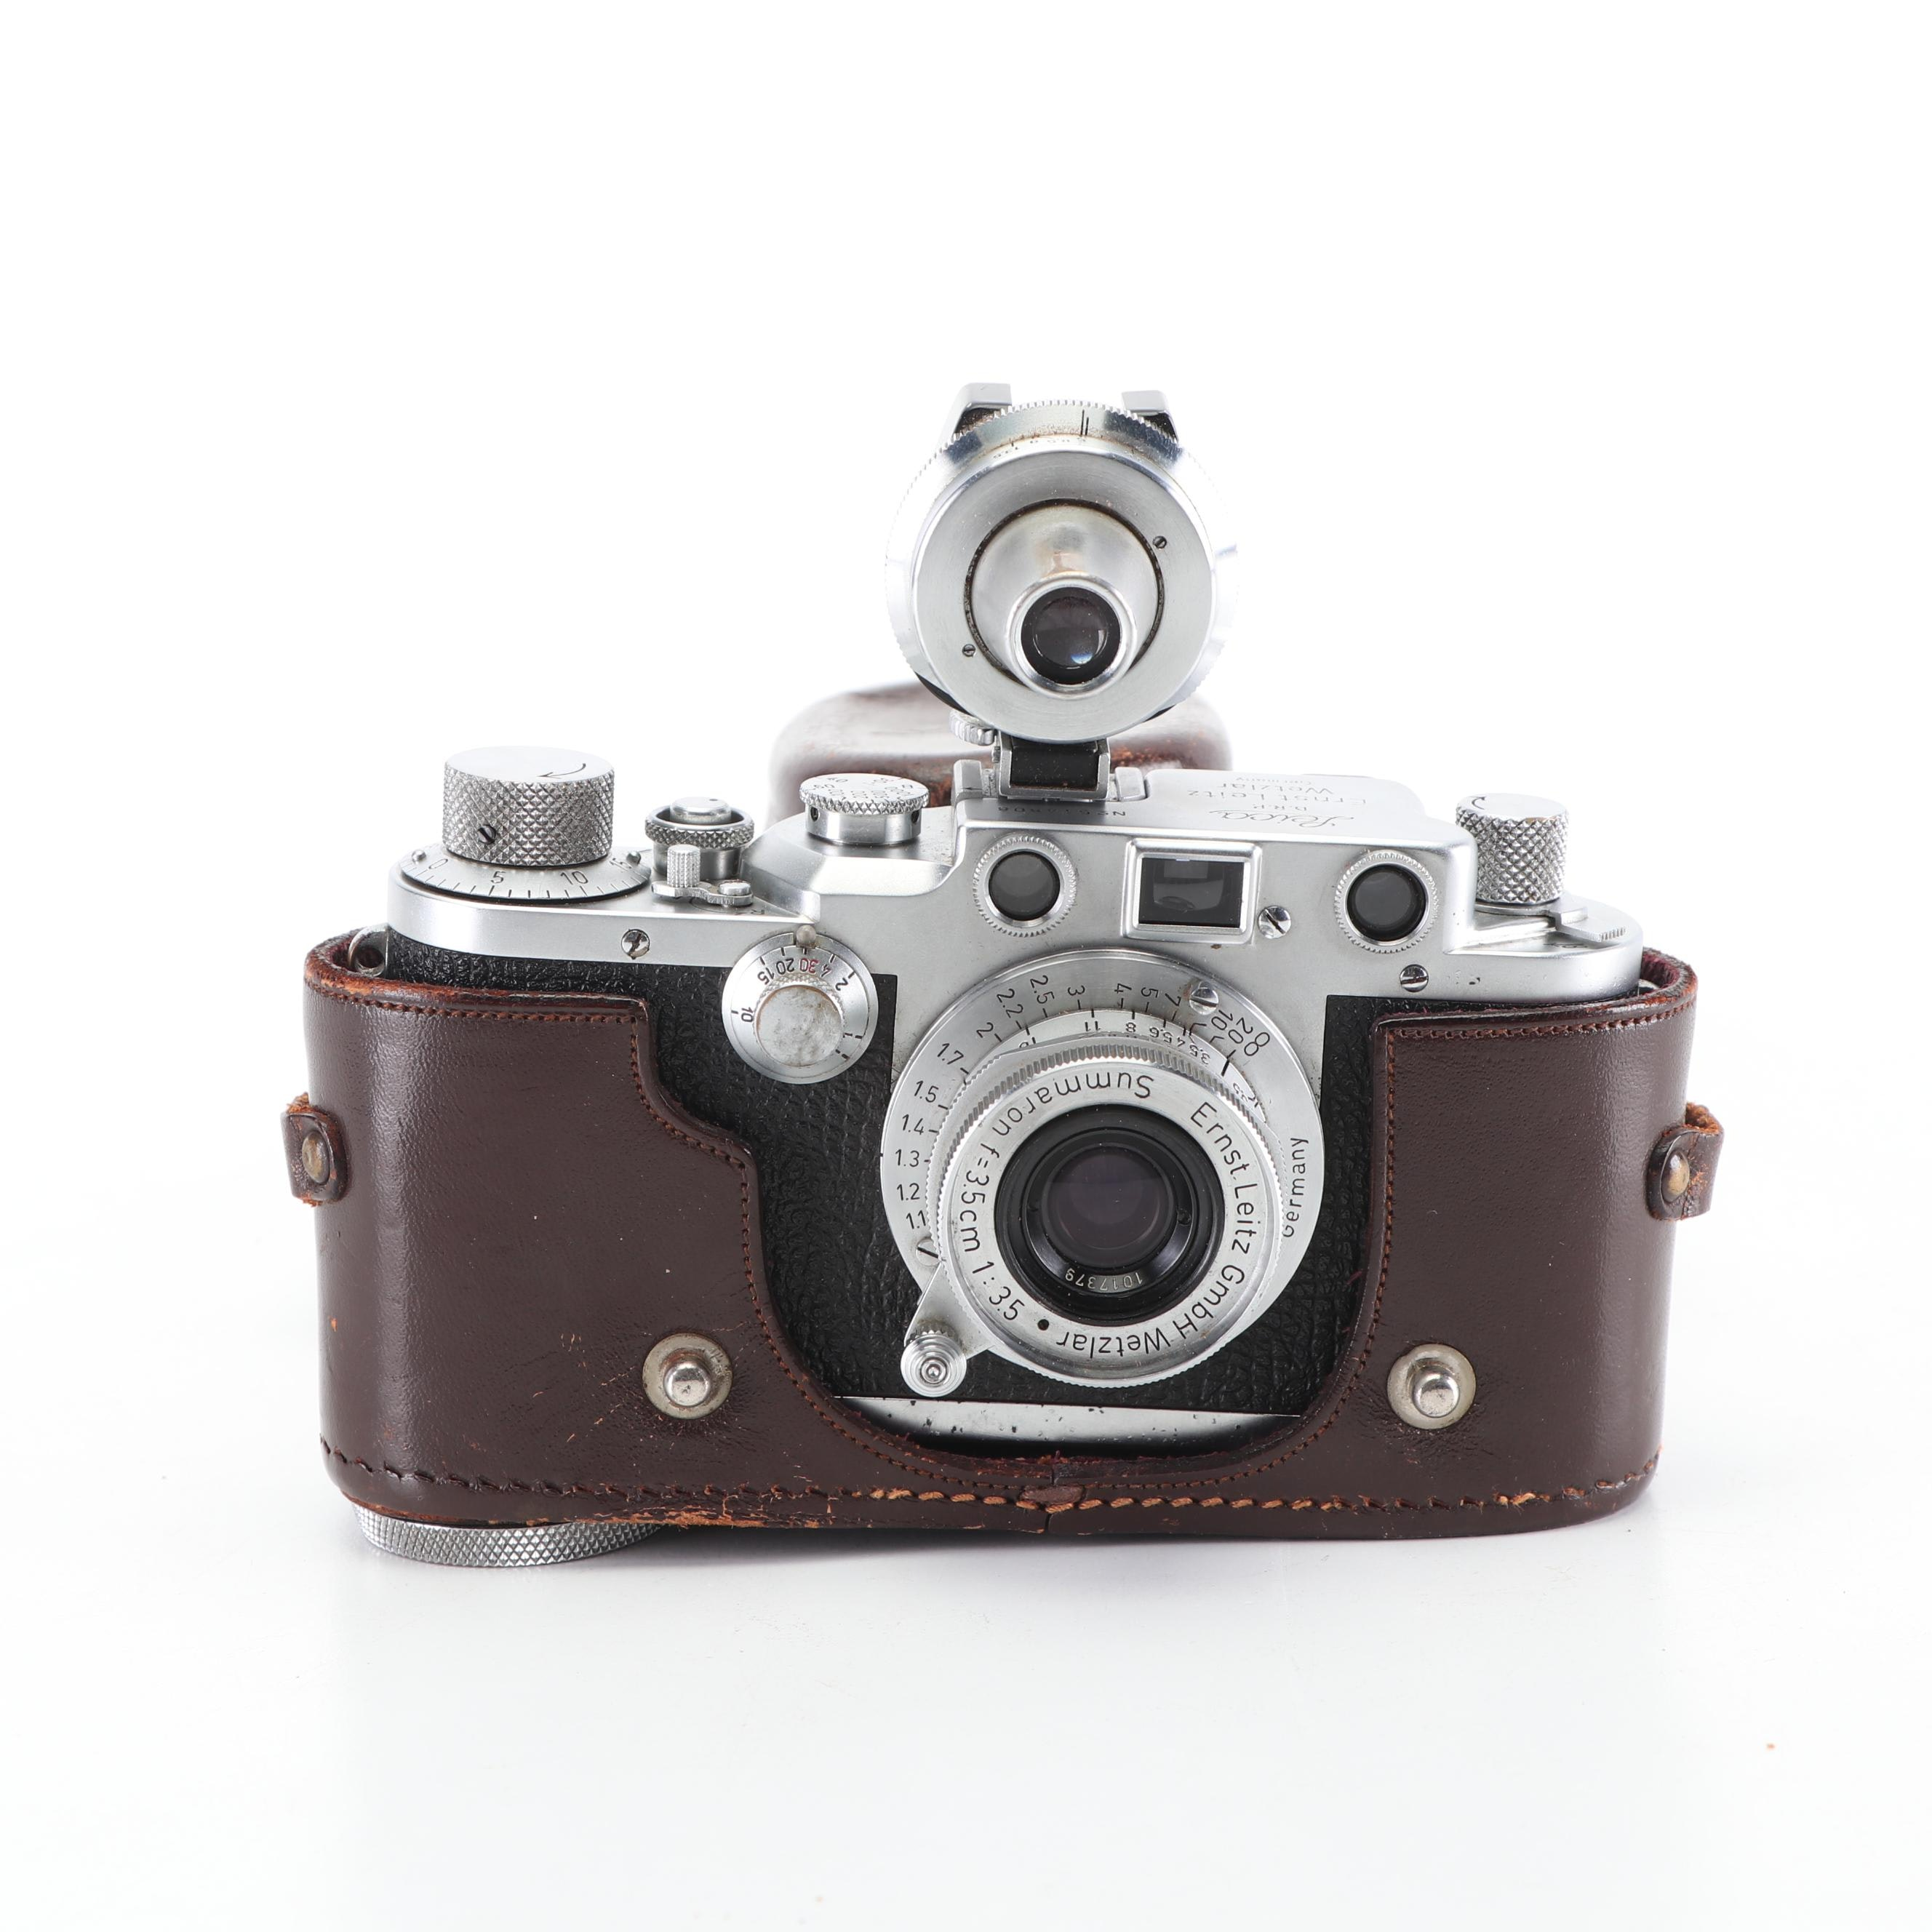 Leica IIIC 35mm Camera with Viewfinder Attachment and Leather Case, c. 1950